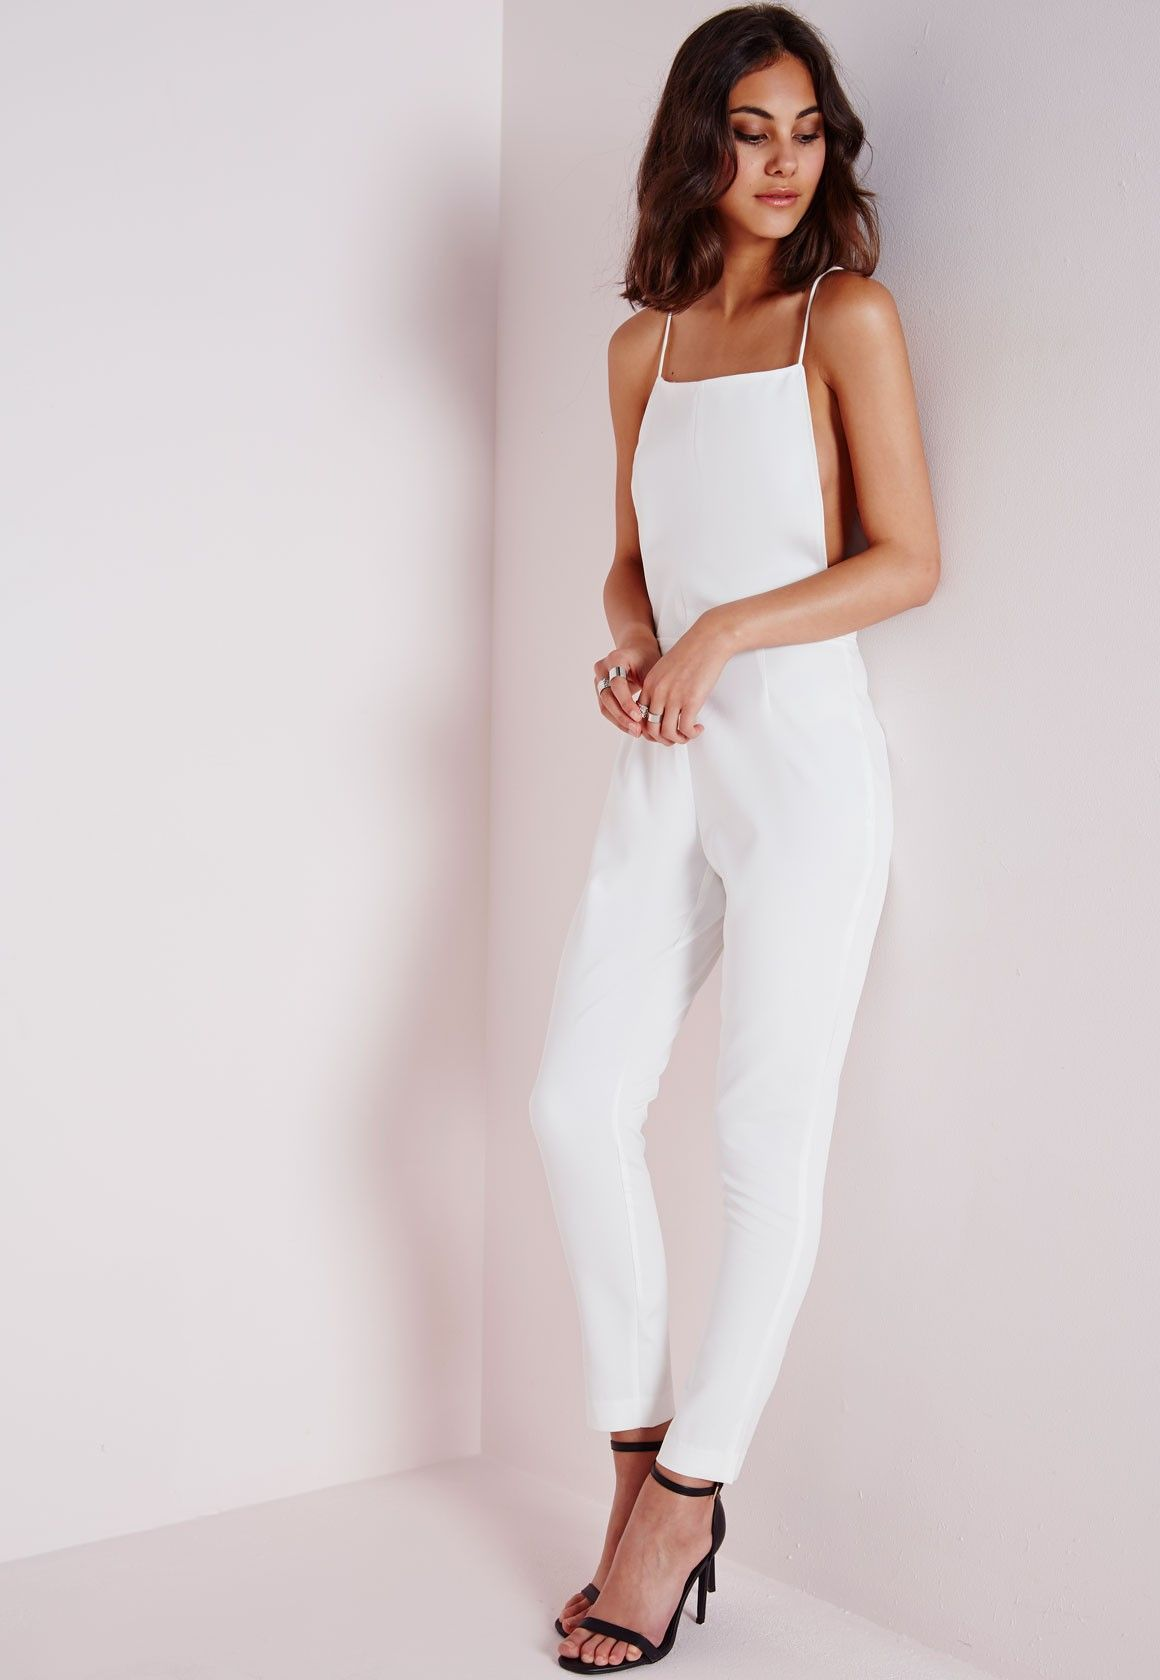 https://www.missguided.co.uk/clothing/category/jumpsuits/strappy ...